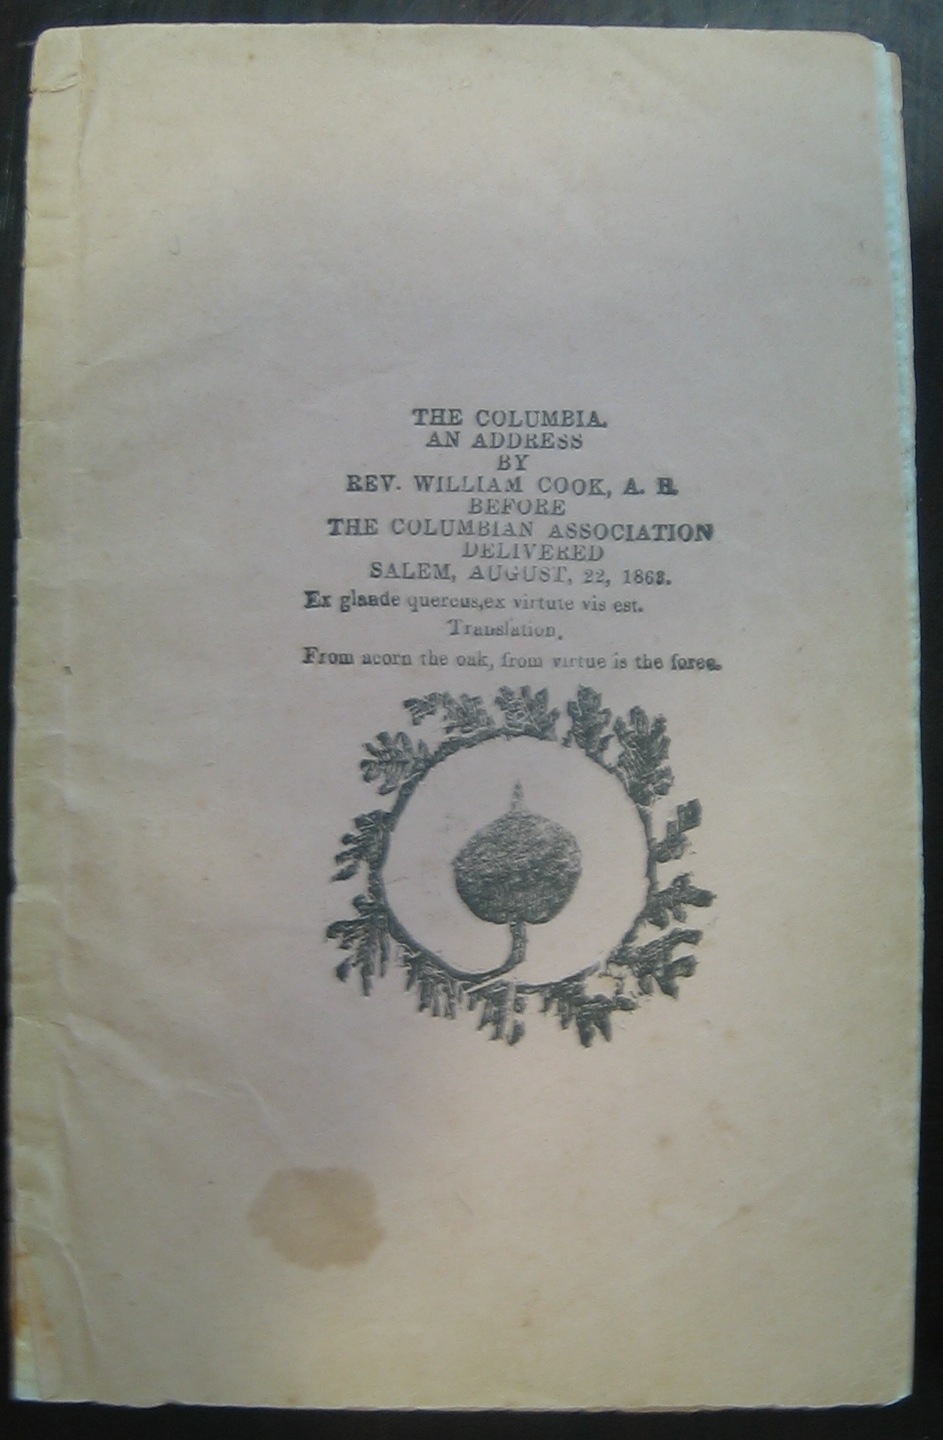 Frotn cover of Cook's The Columbia (Salem, Mass., 1863) (Barrett PS586 .Z93 .C673 C6 1863)